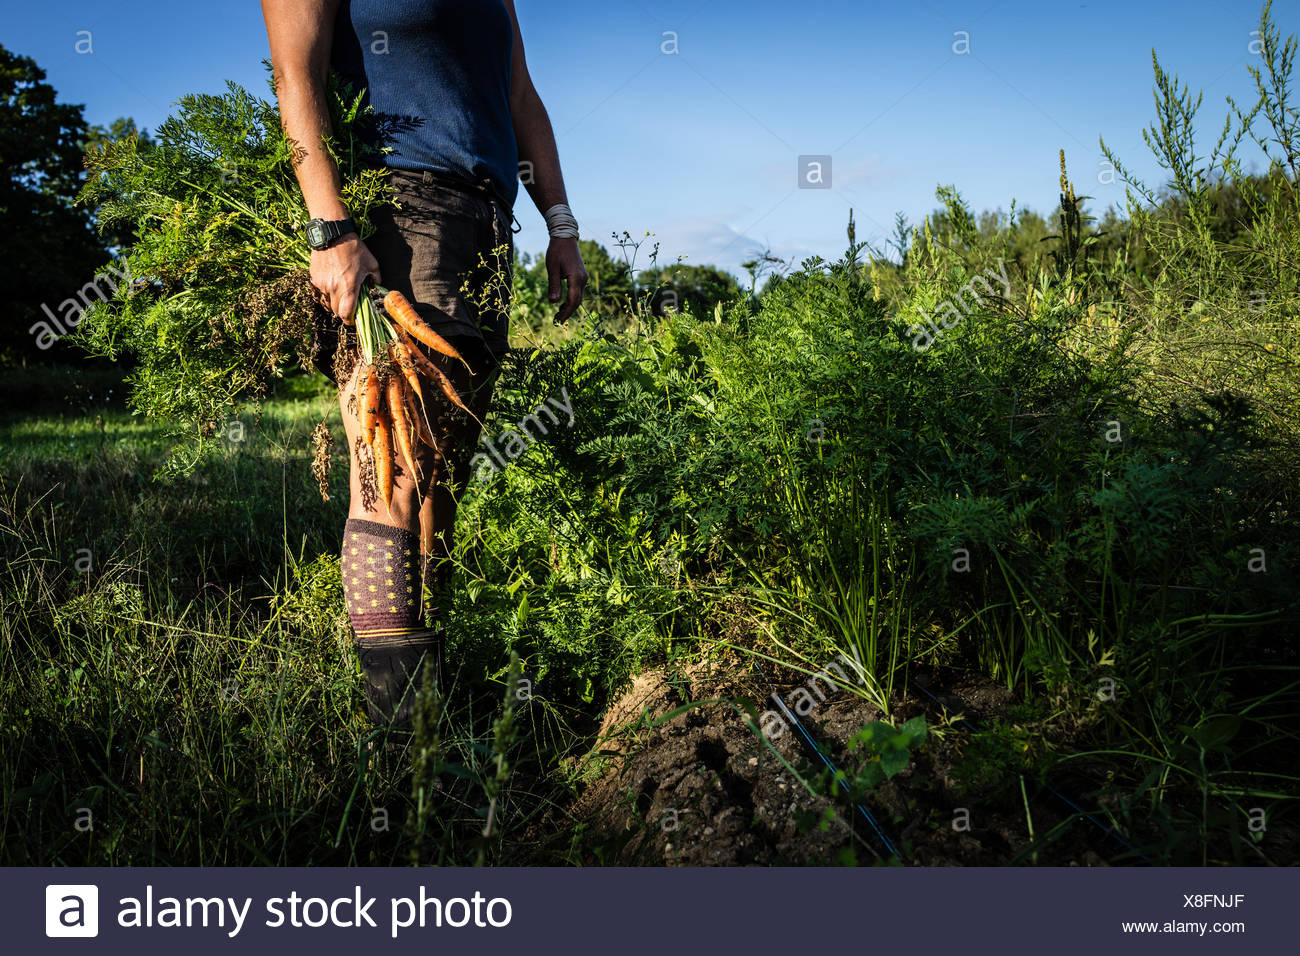 A farmer with a handful of carrots she has just pulled from her crop. - Stock Image